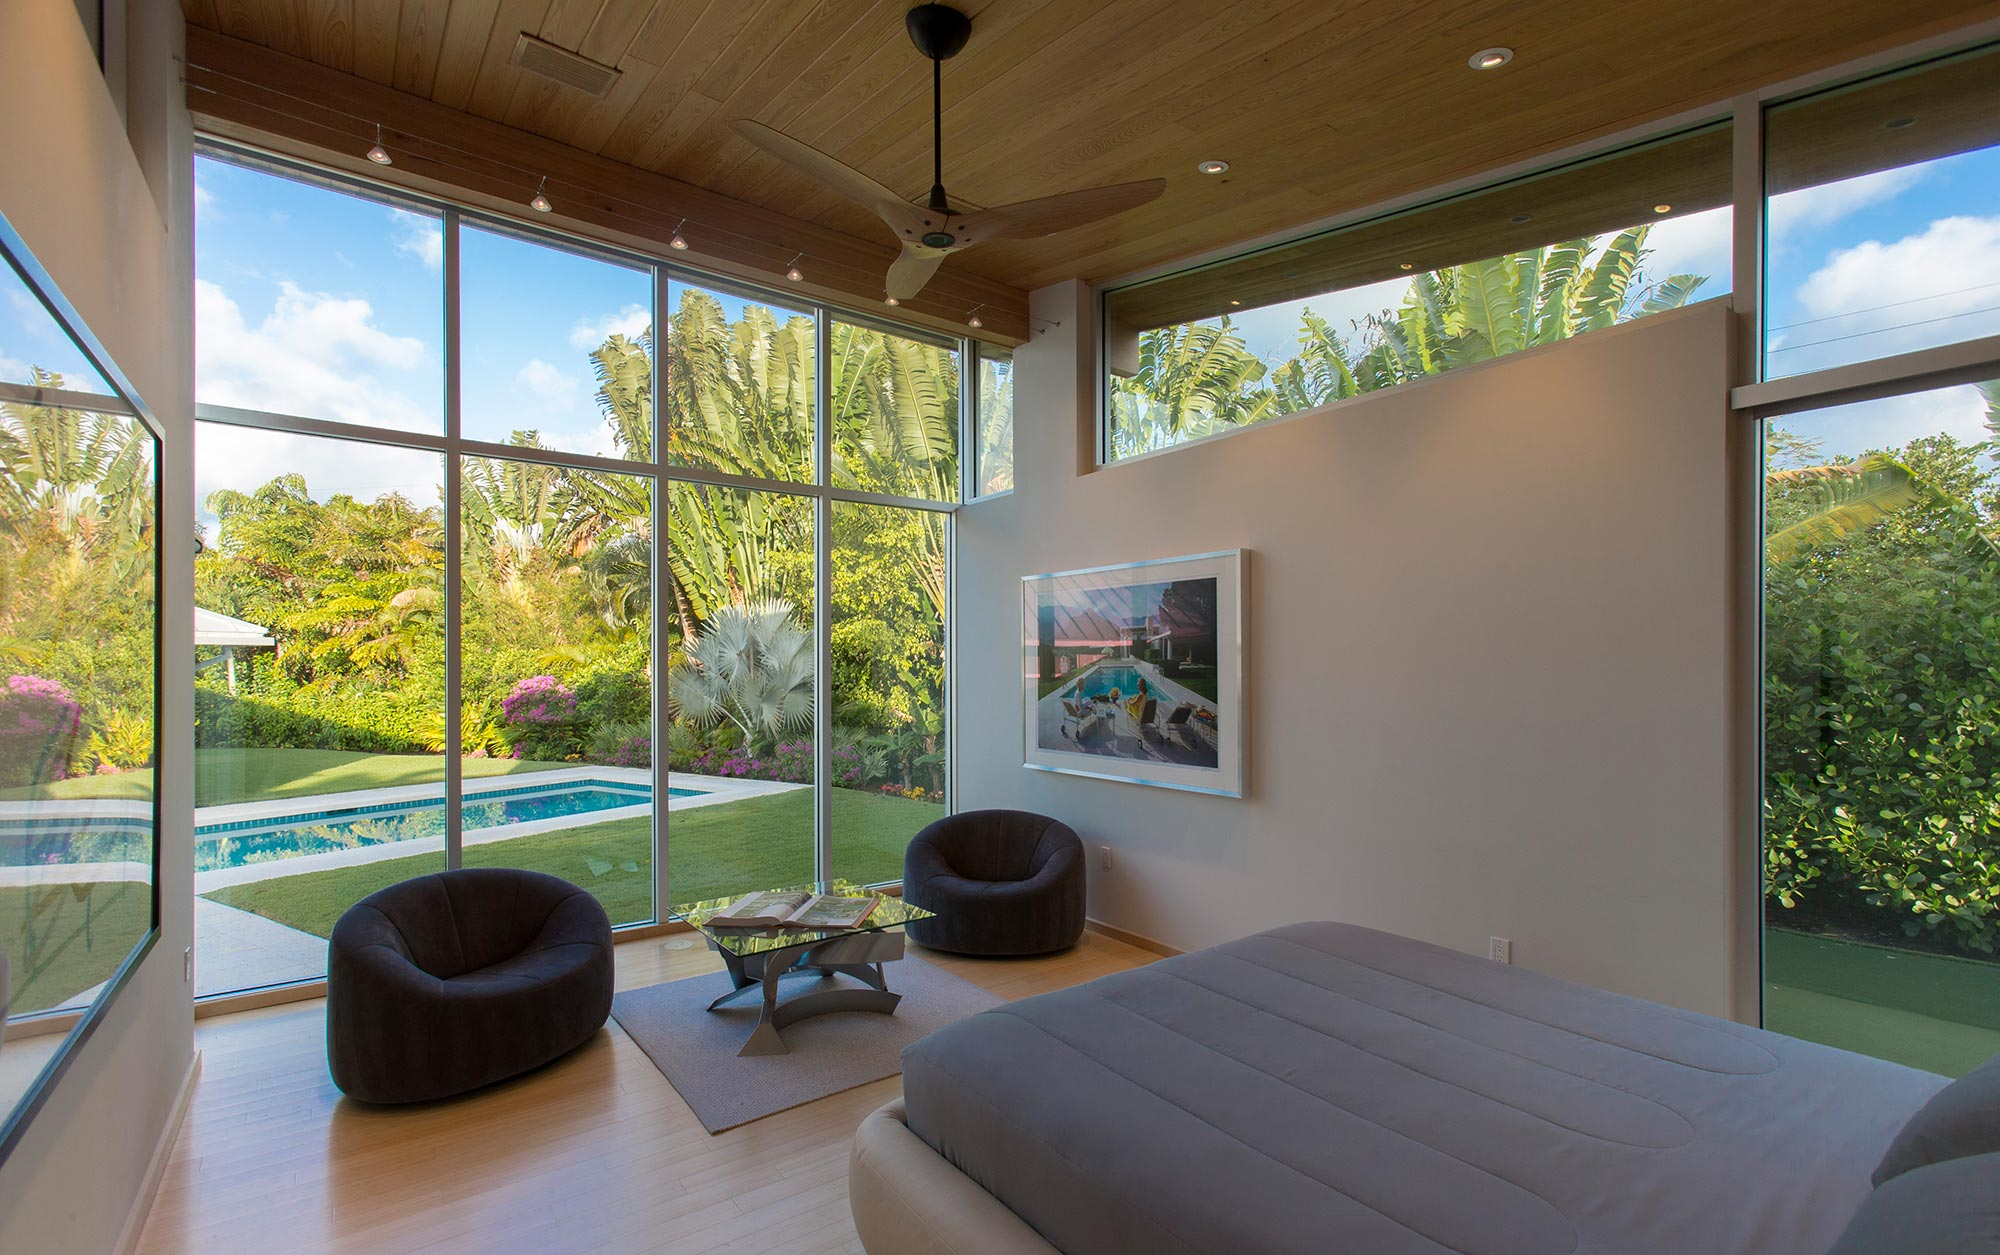 New master suite is positioned with a view to the new pool and private yard.